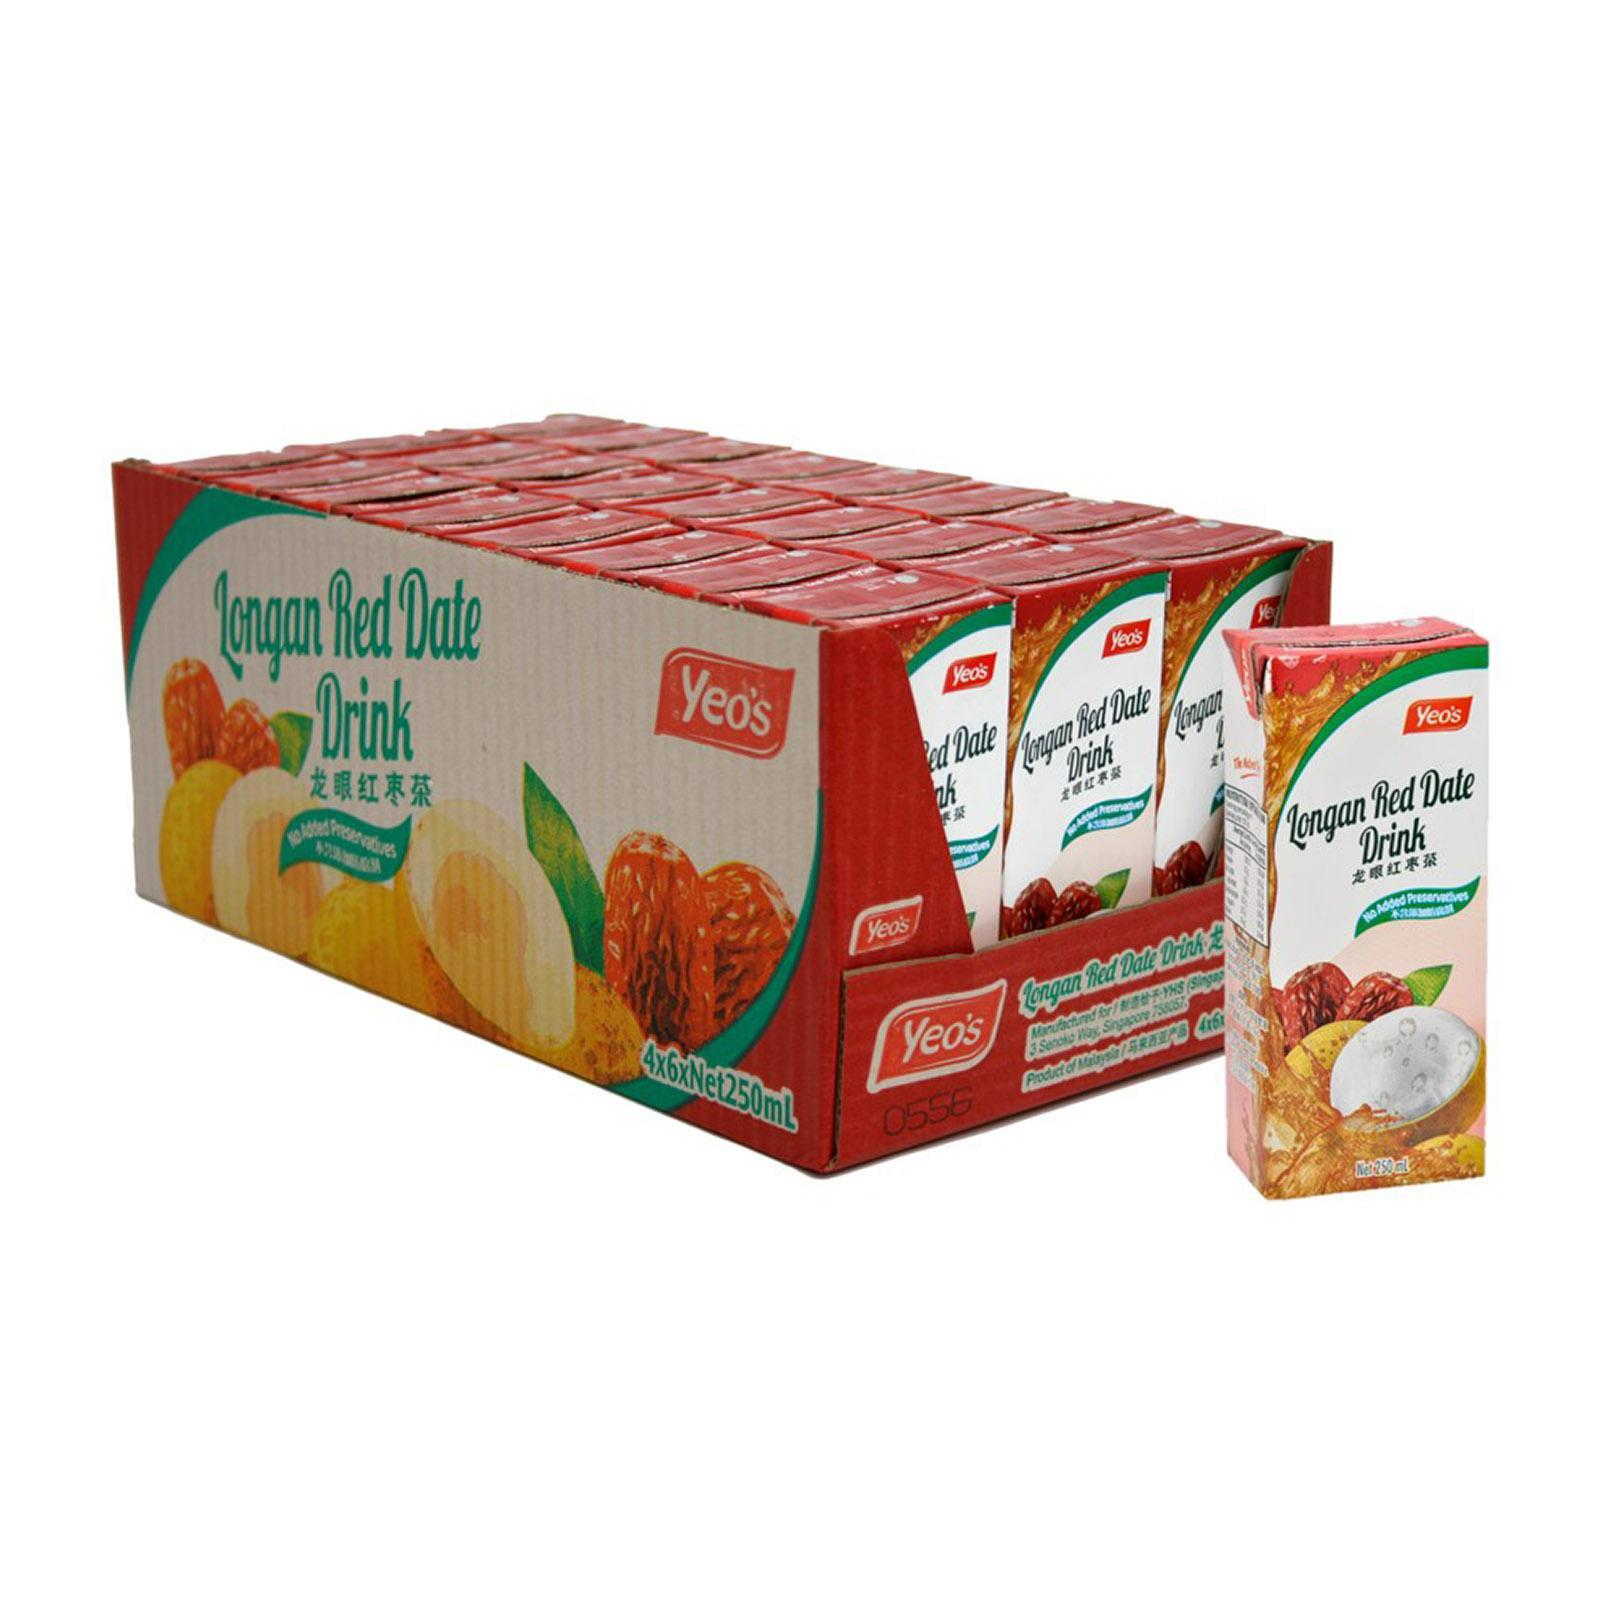 YEO'S Longan Red Date Drink 24sX250ml